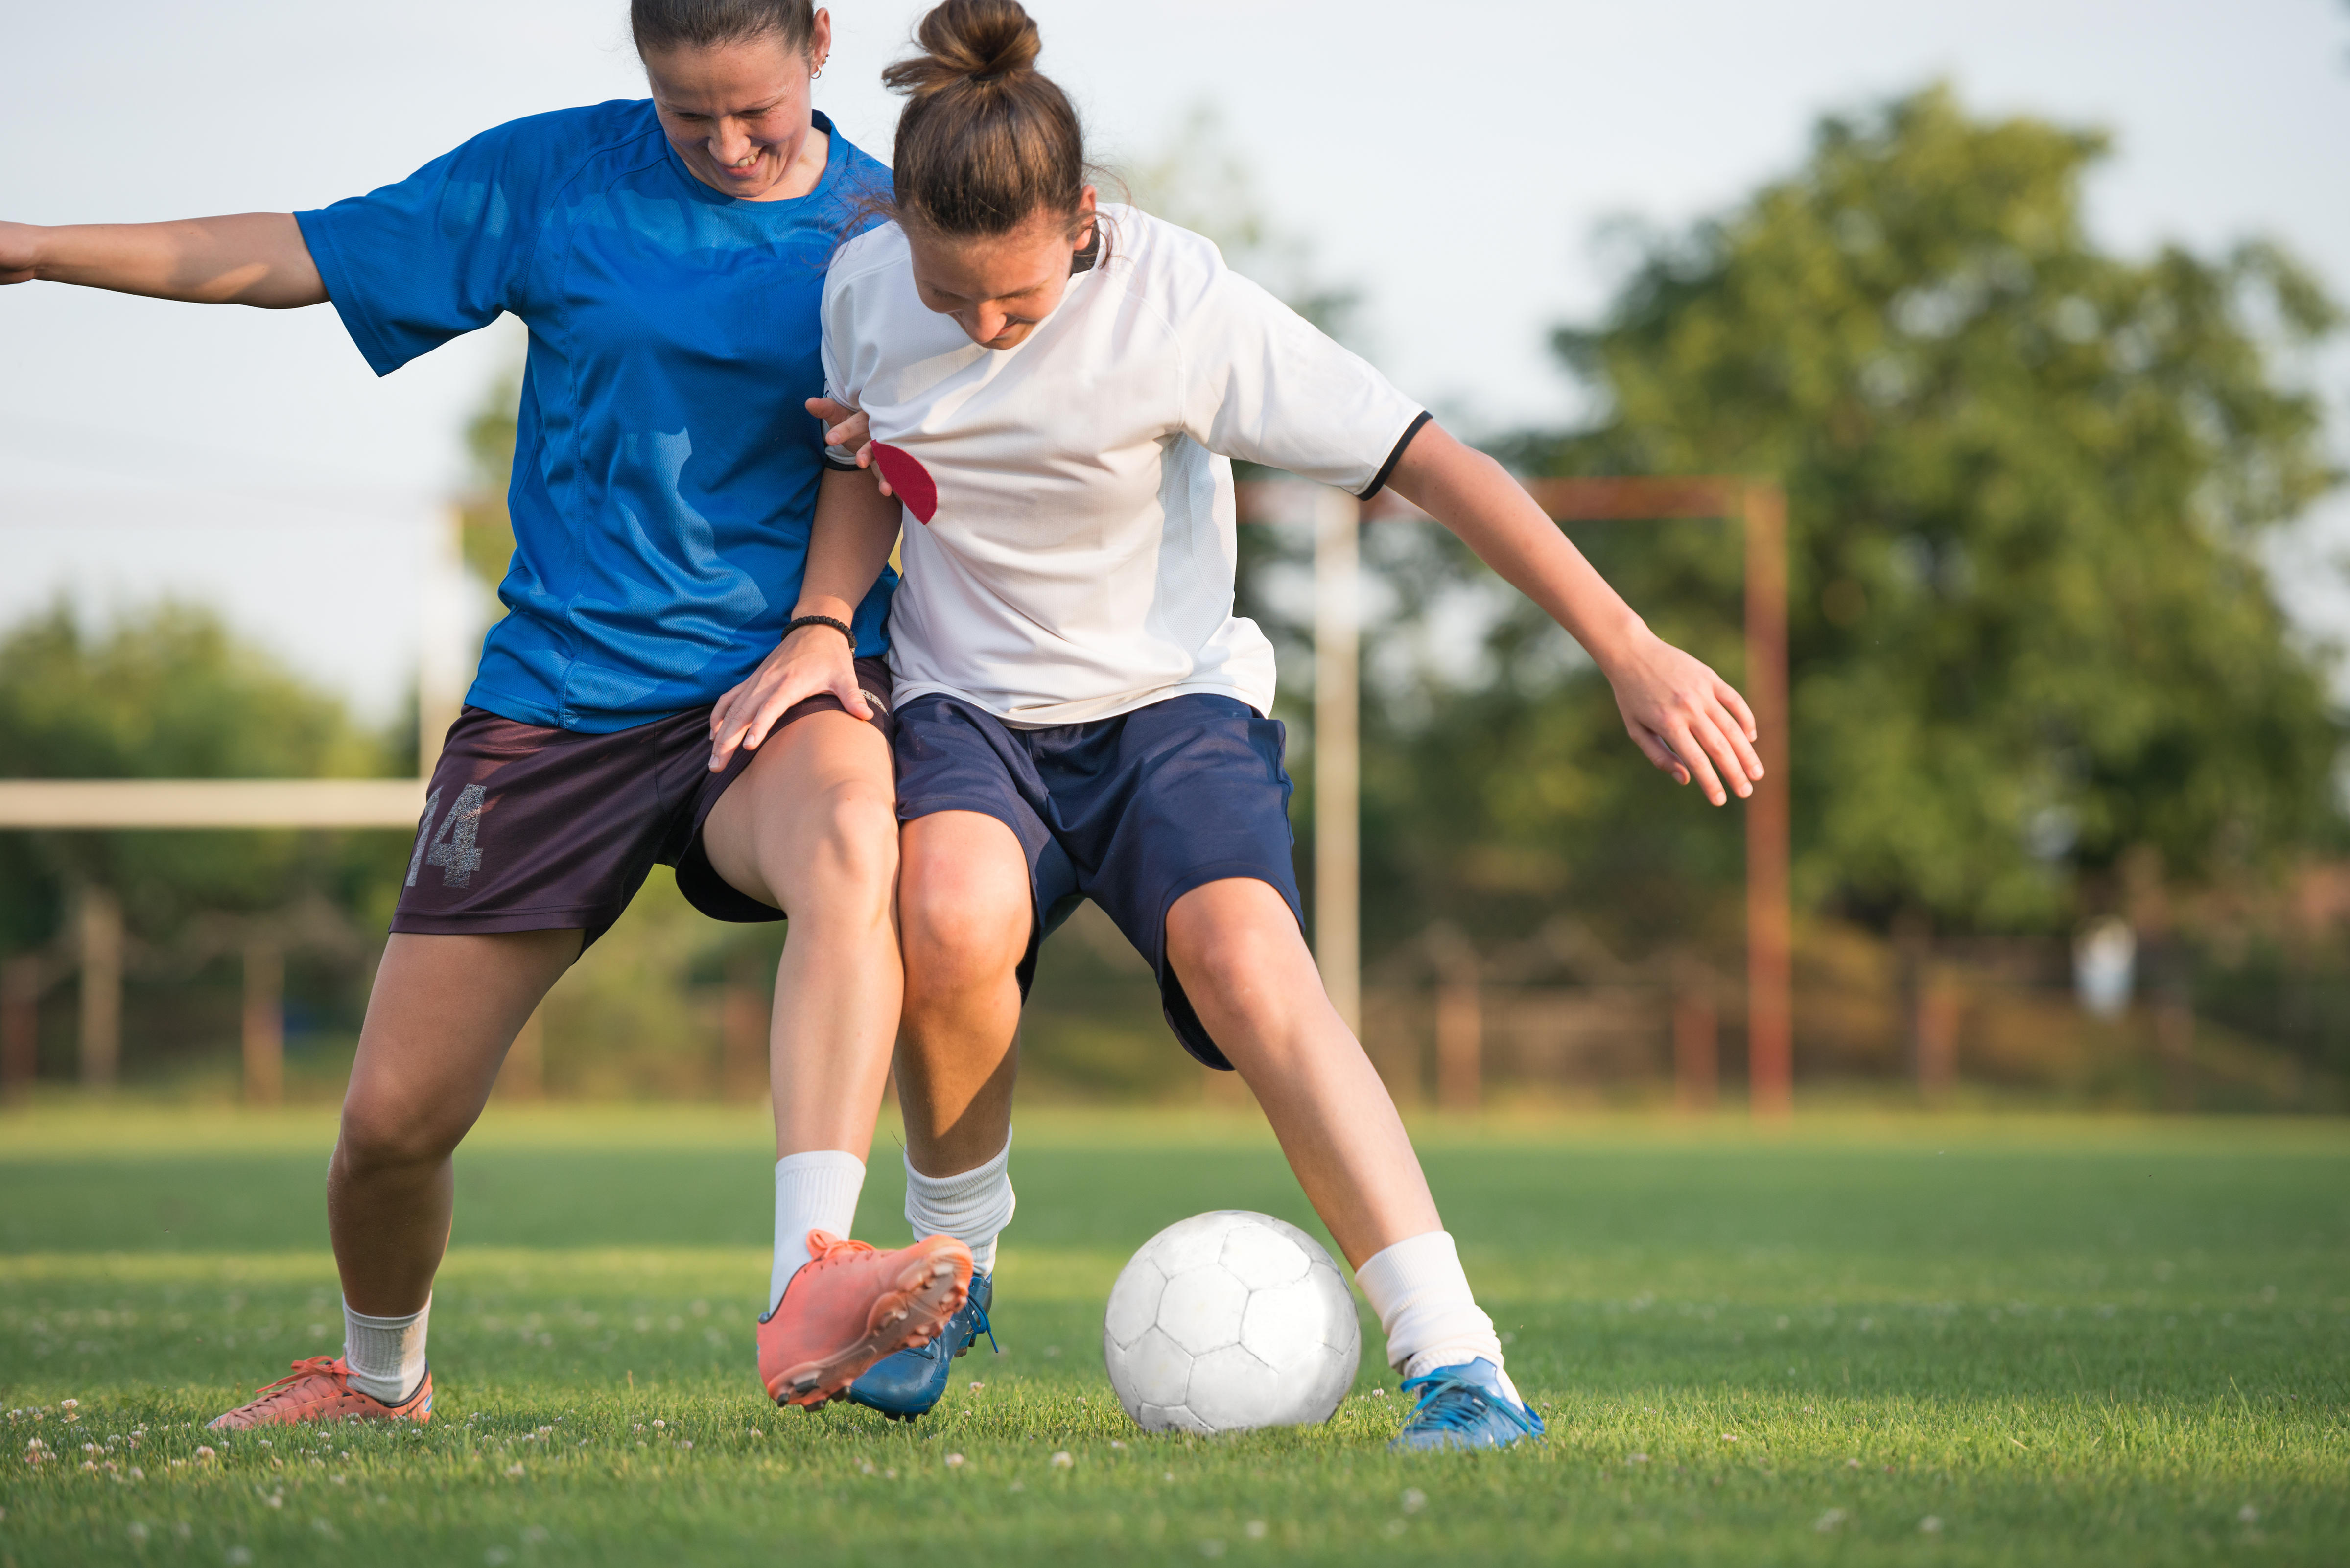 ACL Tears On The Rise Among Kids, Especially Girls